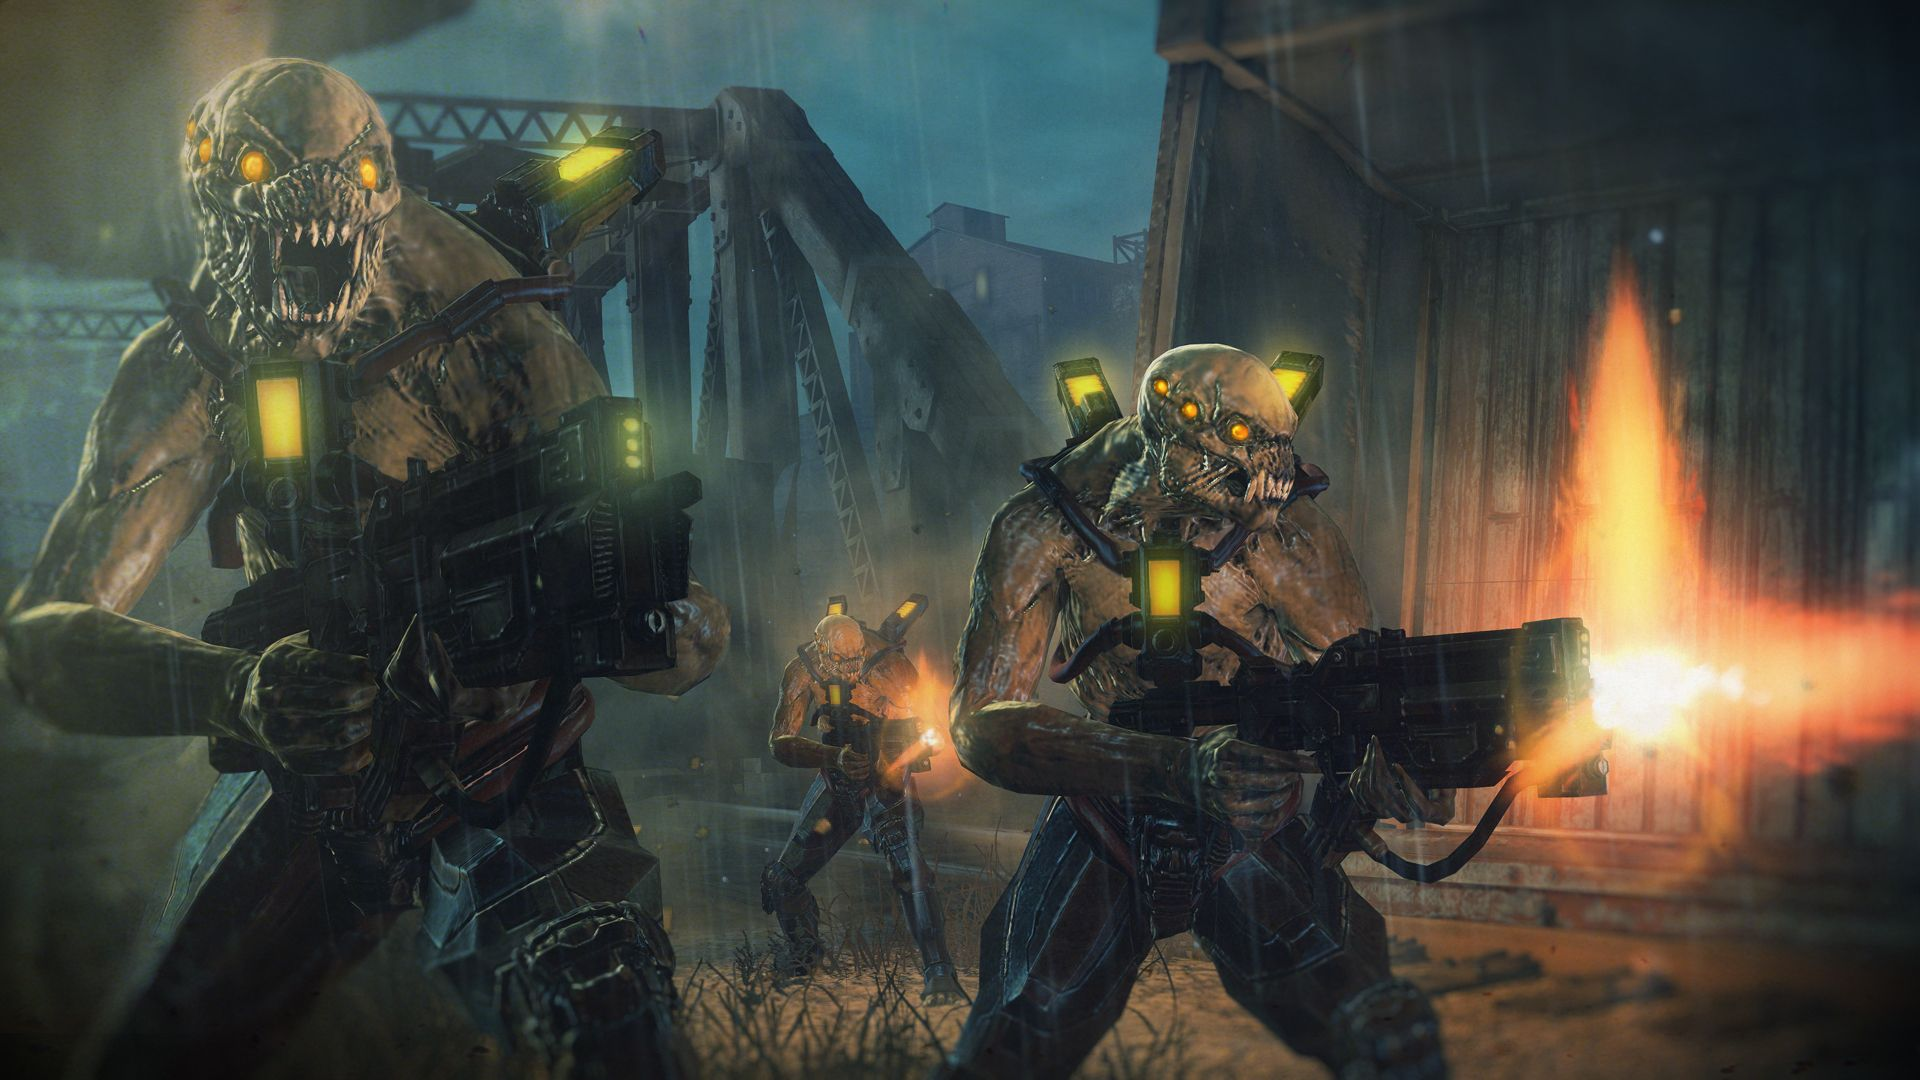 The Locust Gears Of War Vs The Chimera Resistance